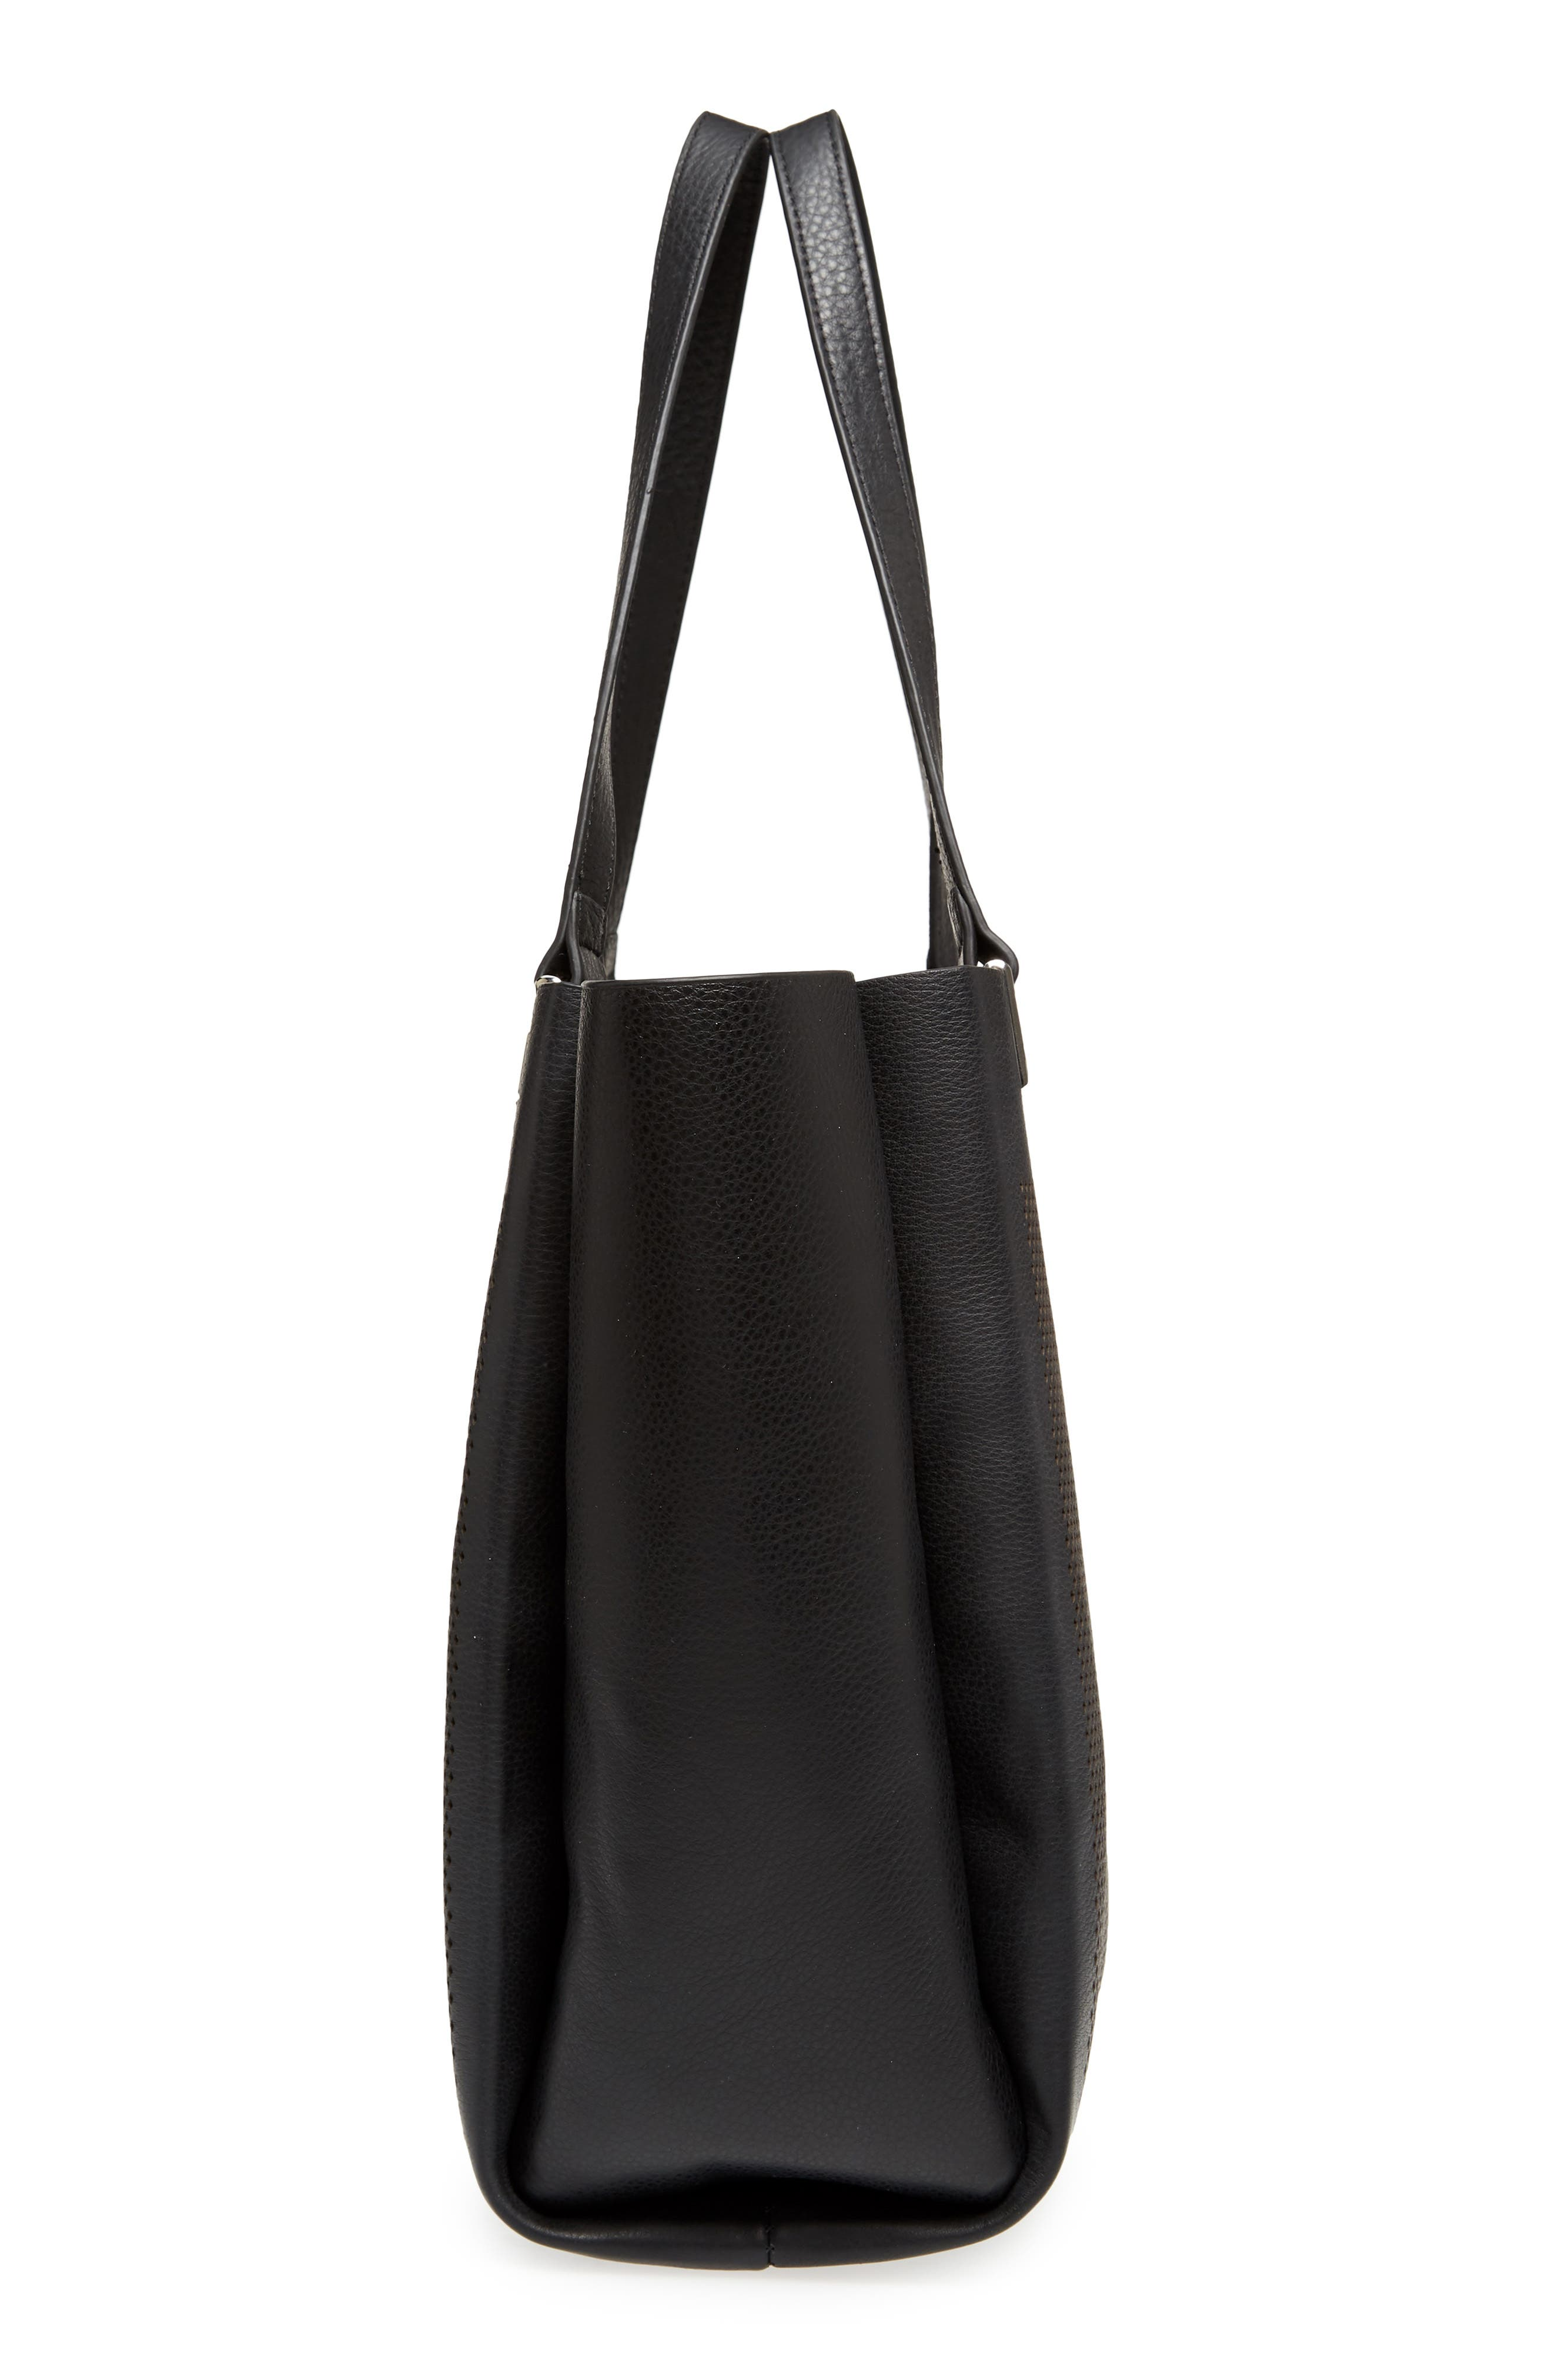 Beatt Perforated Leather Tote,                             Alternate thumbnail 5, color,                             001